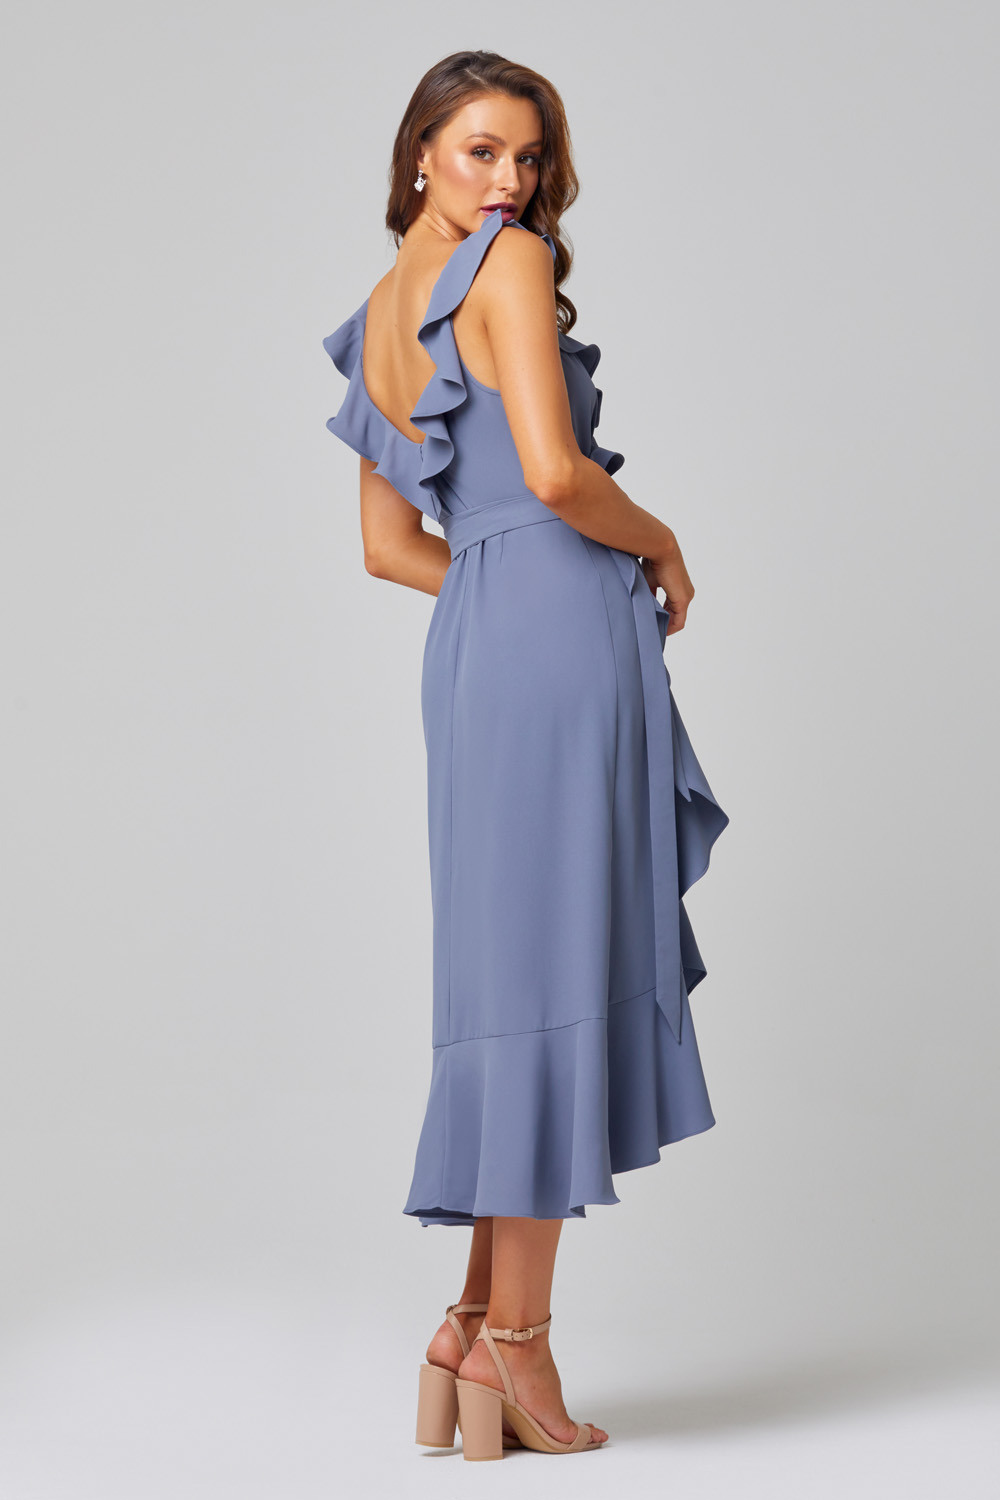 Thea Self-Tie Midi Bridesmaid Dress - TO855 back